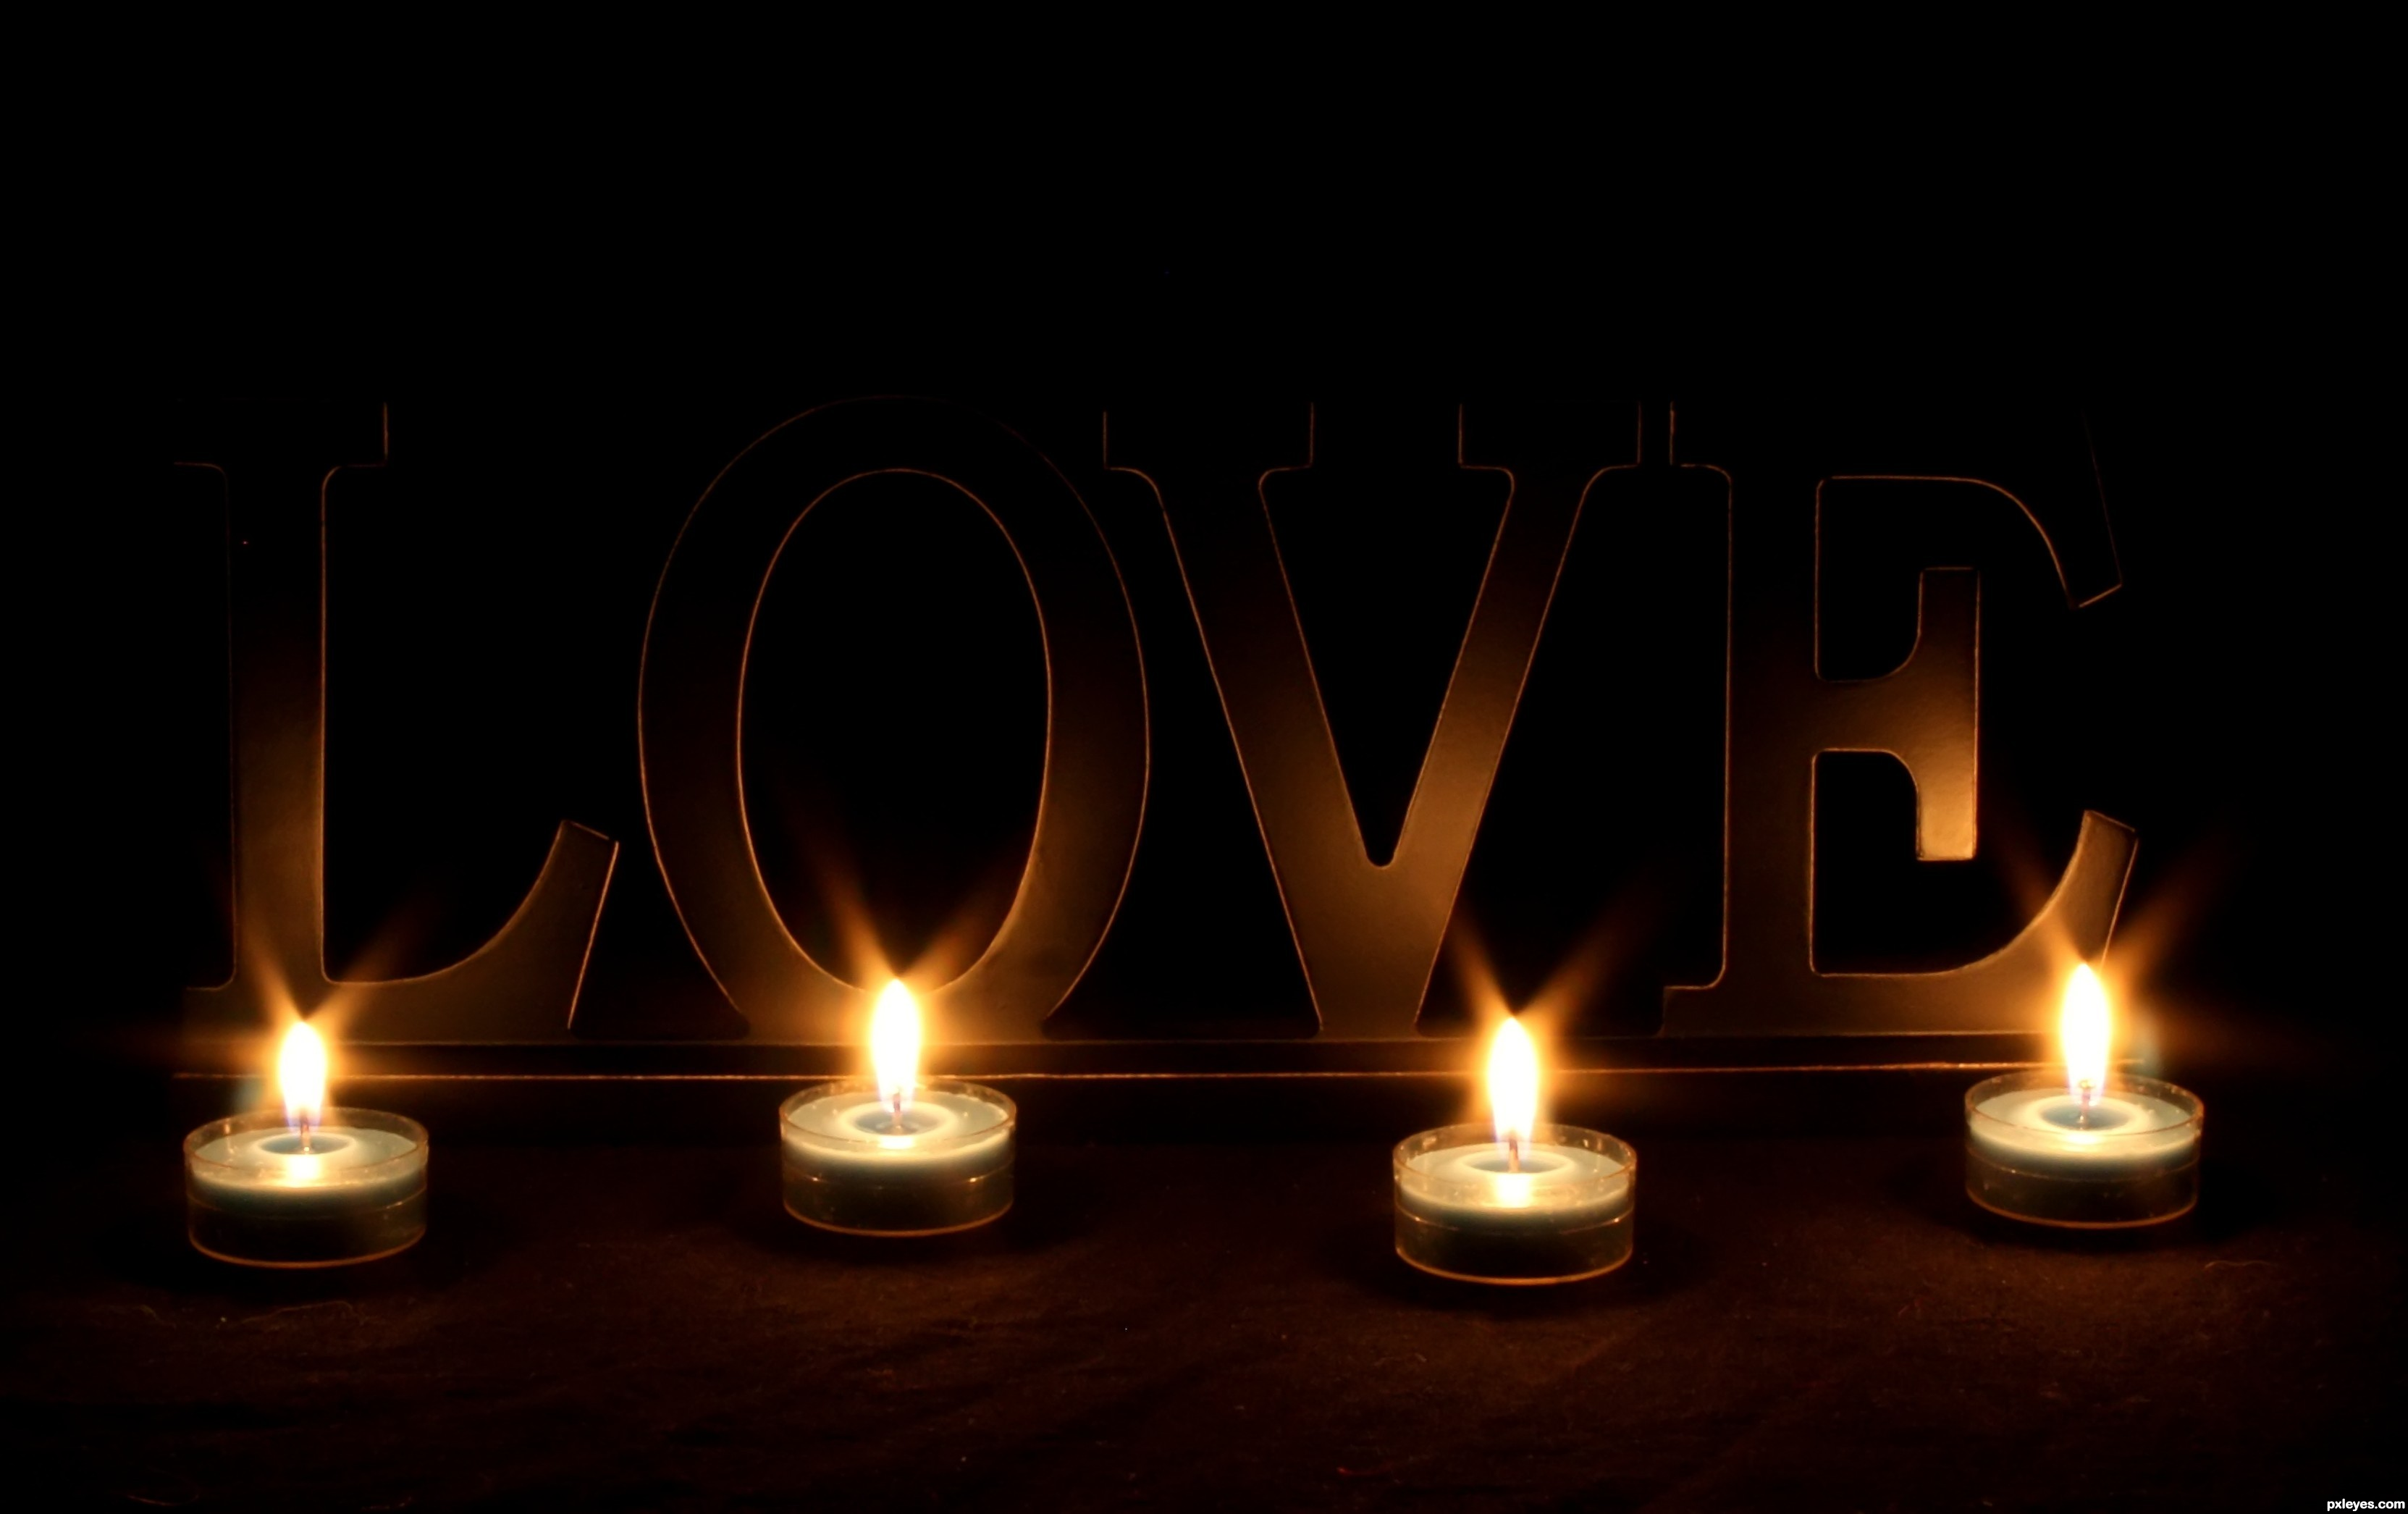 Candle Light Photography Contest 16616 Pictures Page 1 Pxleyes Com